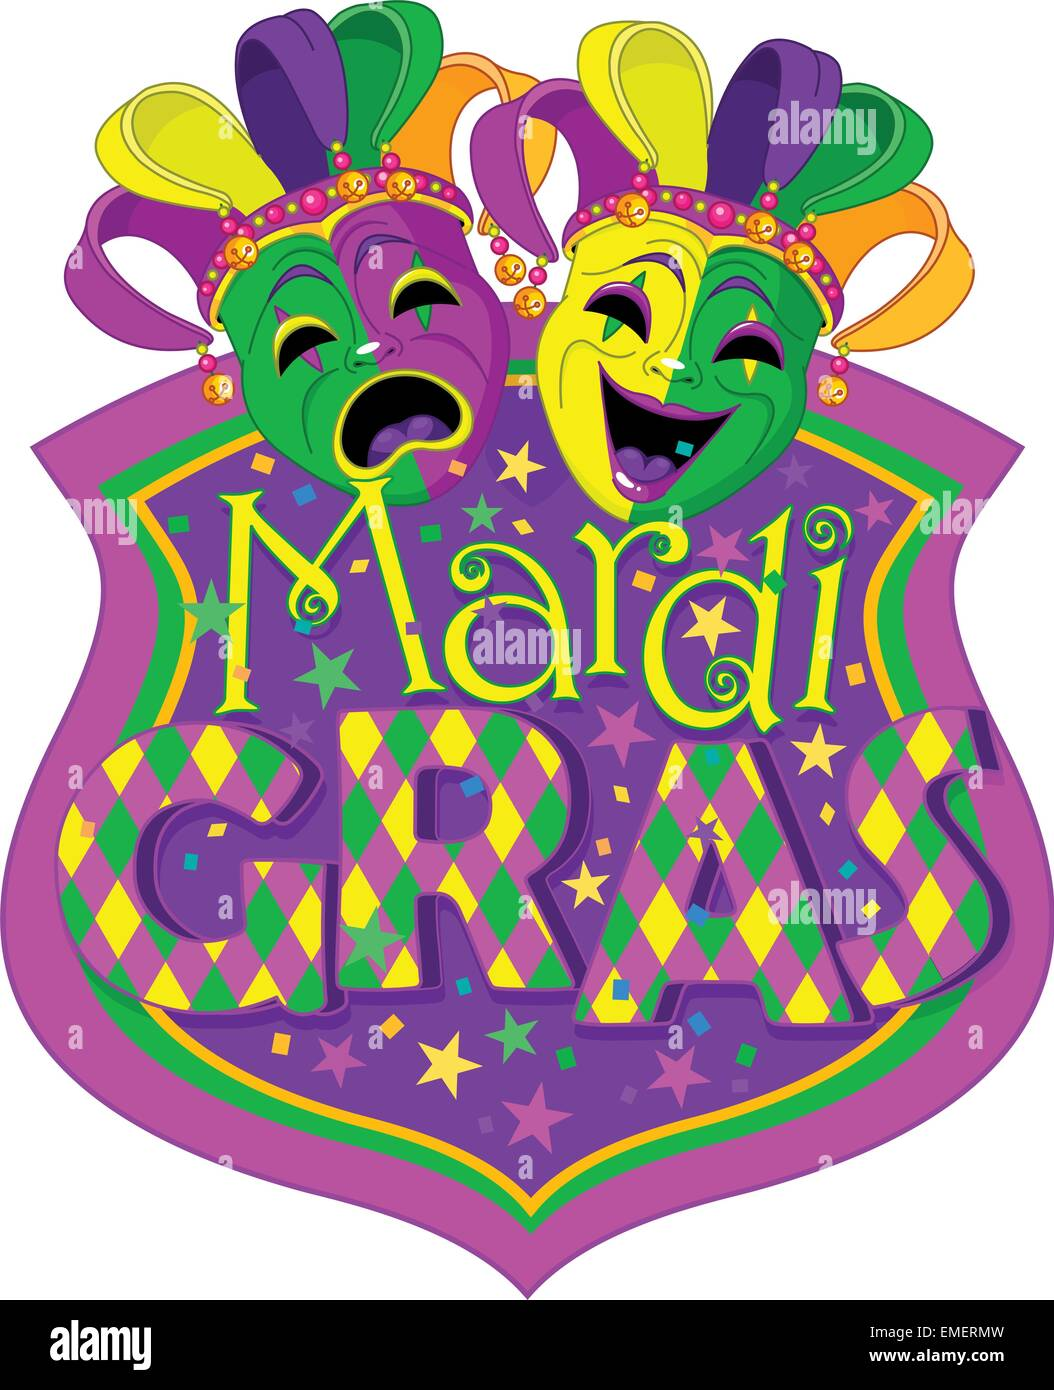 Mardi Gras Masks design - Stock Vector